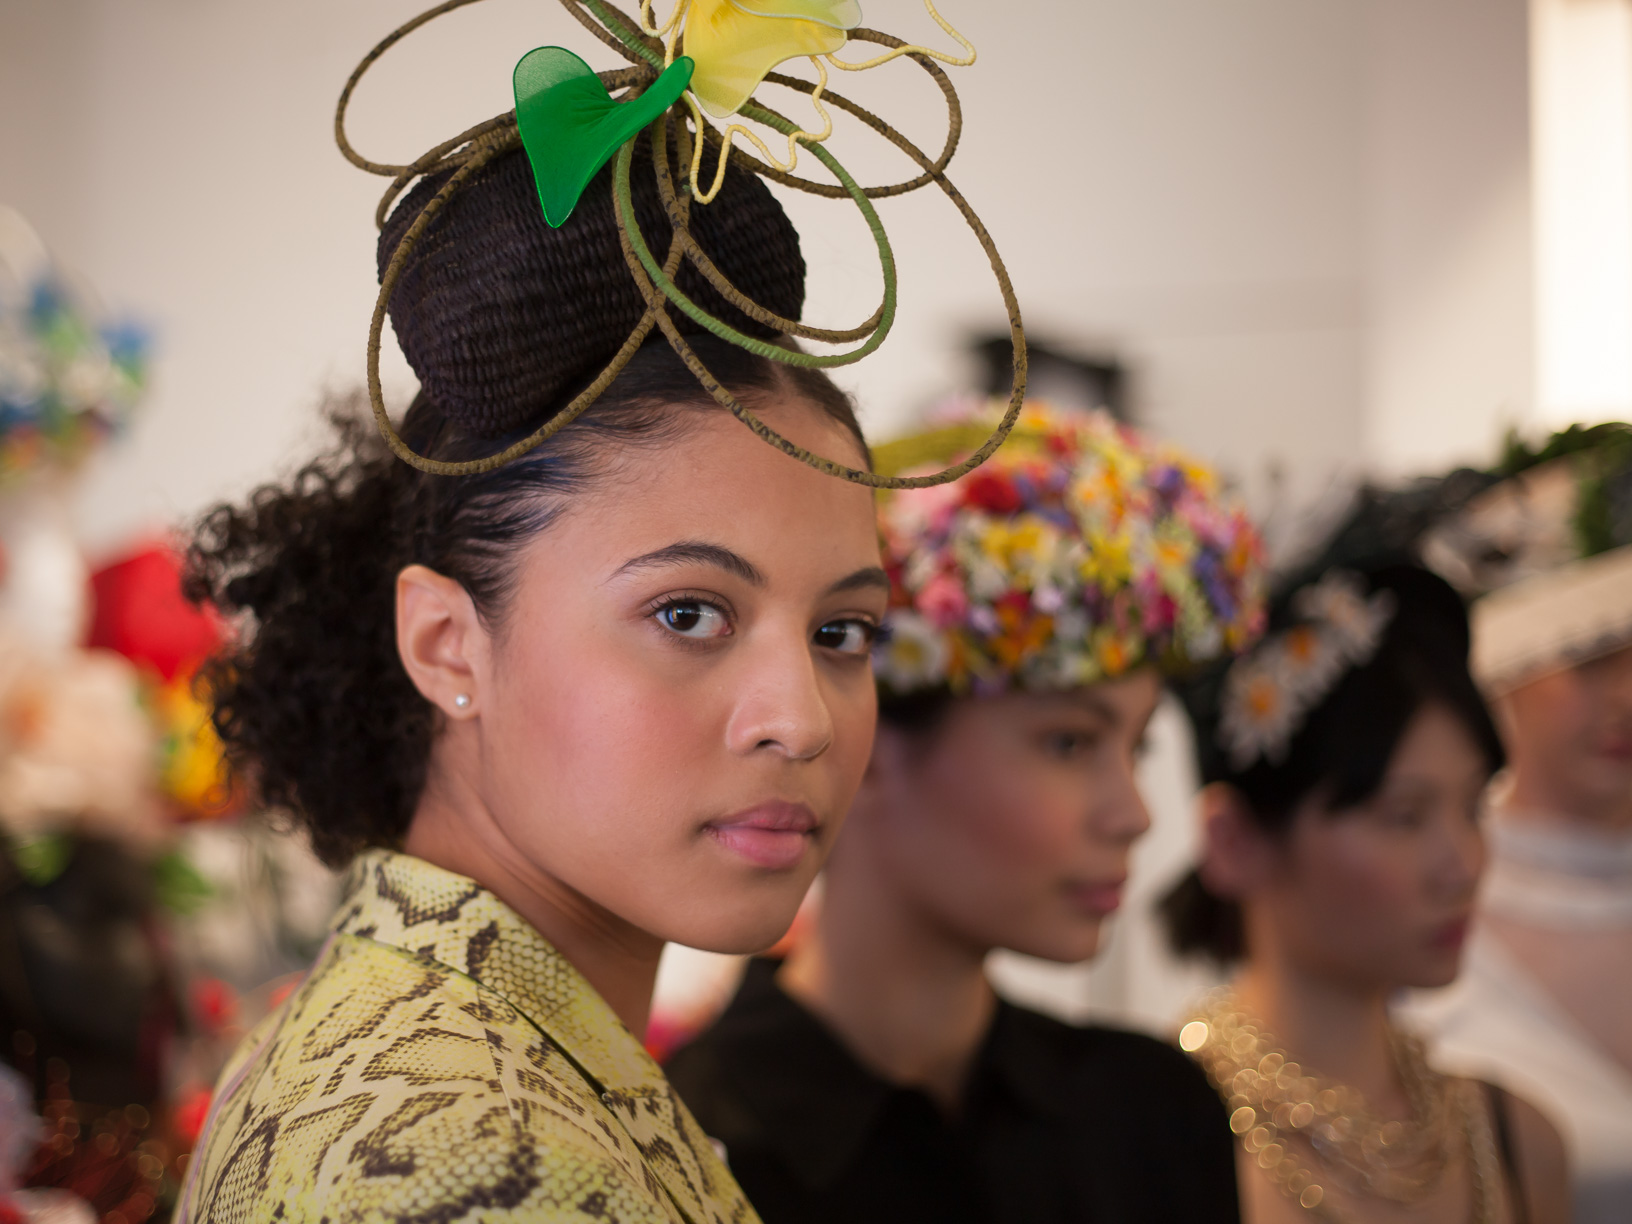 Hats made by milliners from around the world were shown at the X Terrace PINKO World Garden Hat Exhibition Press Preview earlier this month. Images from Dmi, Humble Magazine..jpg